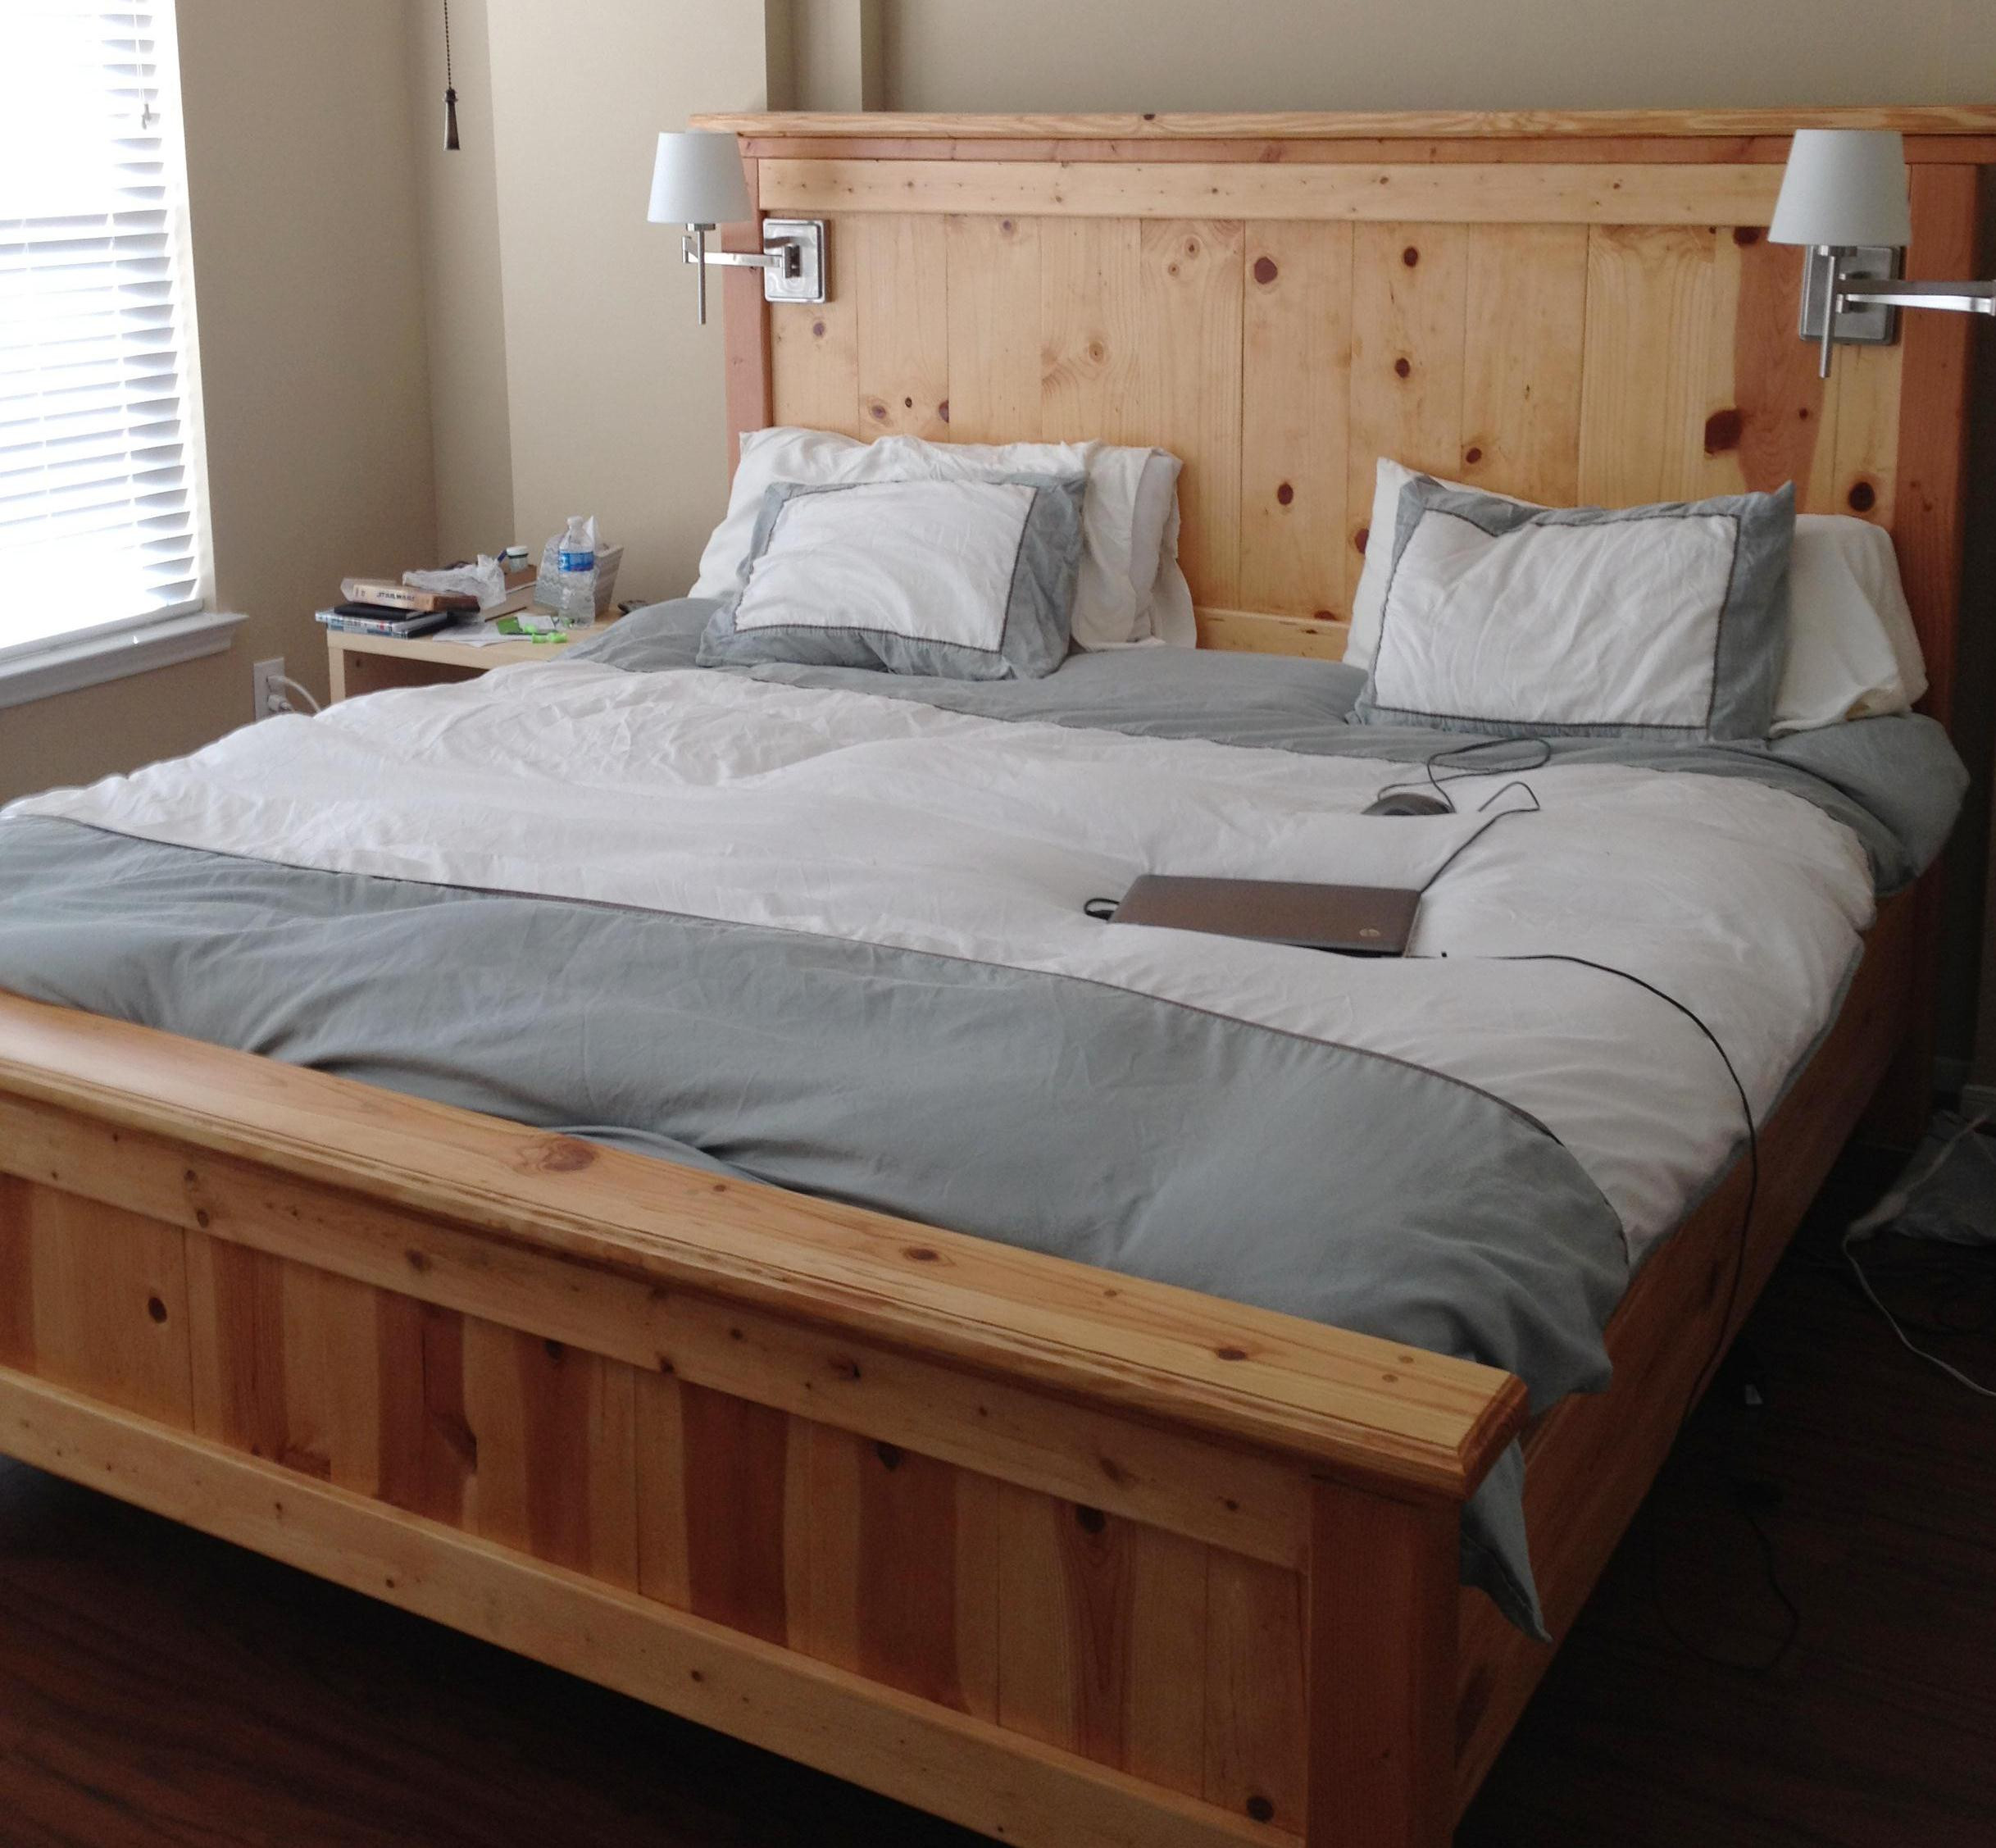 Best ideas about DIY King Size Bed Frame Plans . Save or Pin Ana White Now.